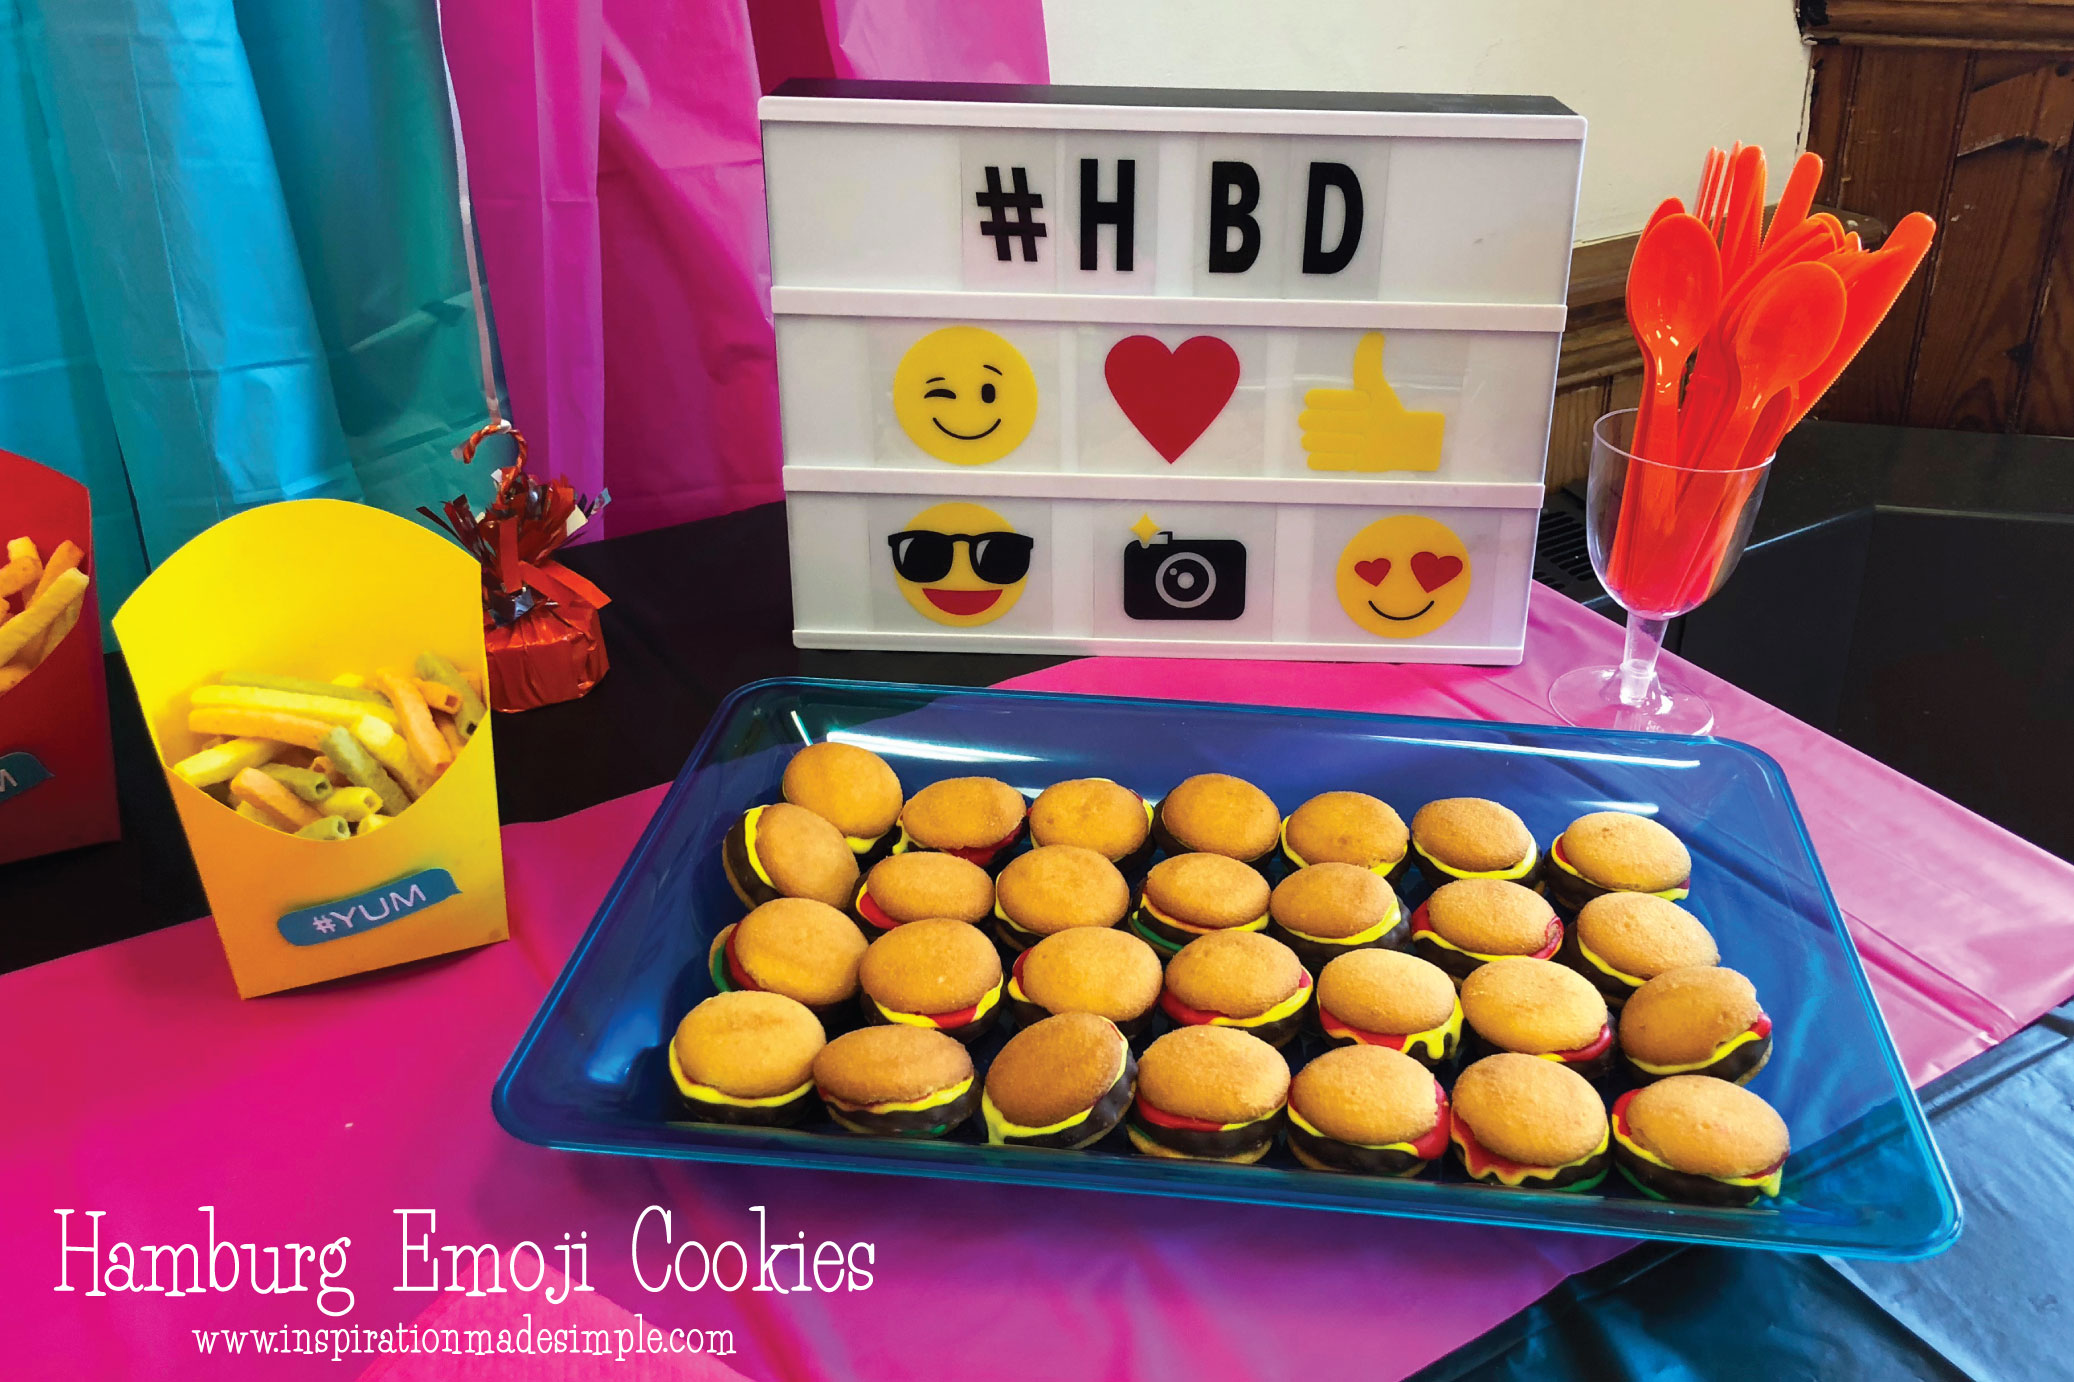 Hamburger Emoji Cookies for an Emoji Paint and Sip Party for Kids